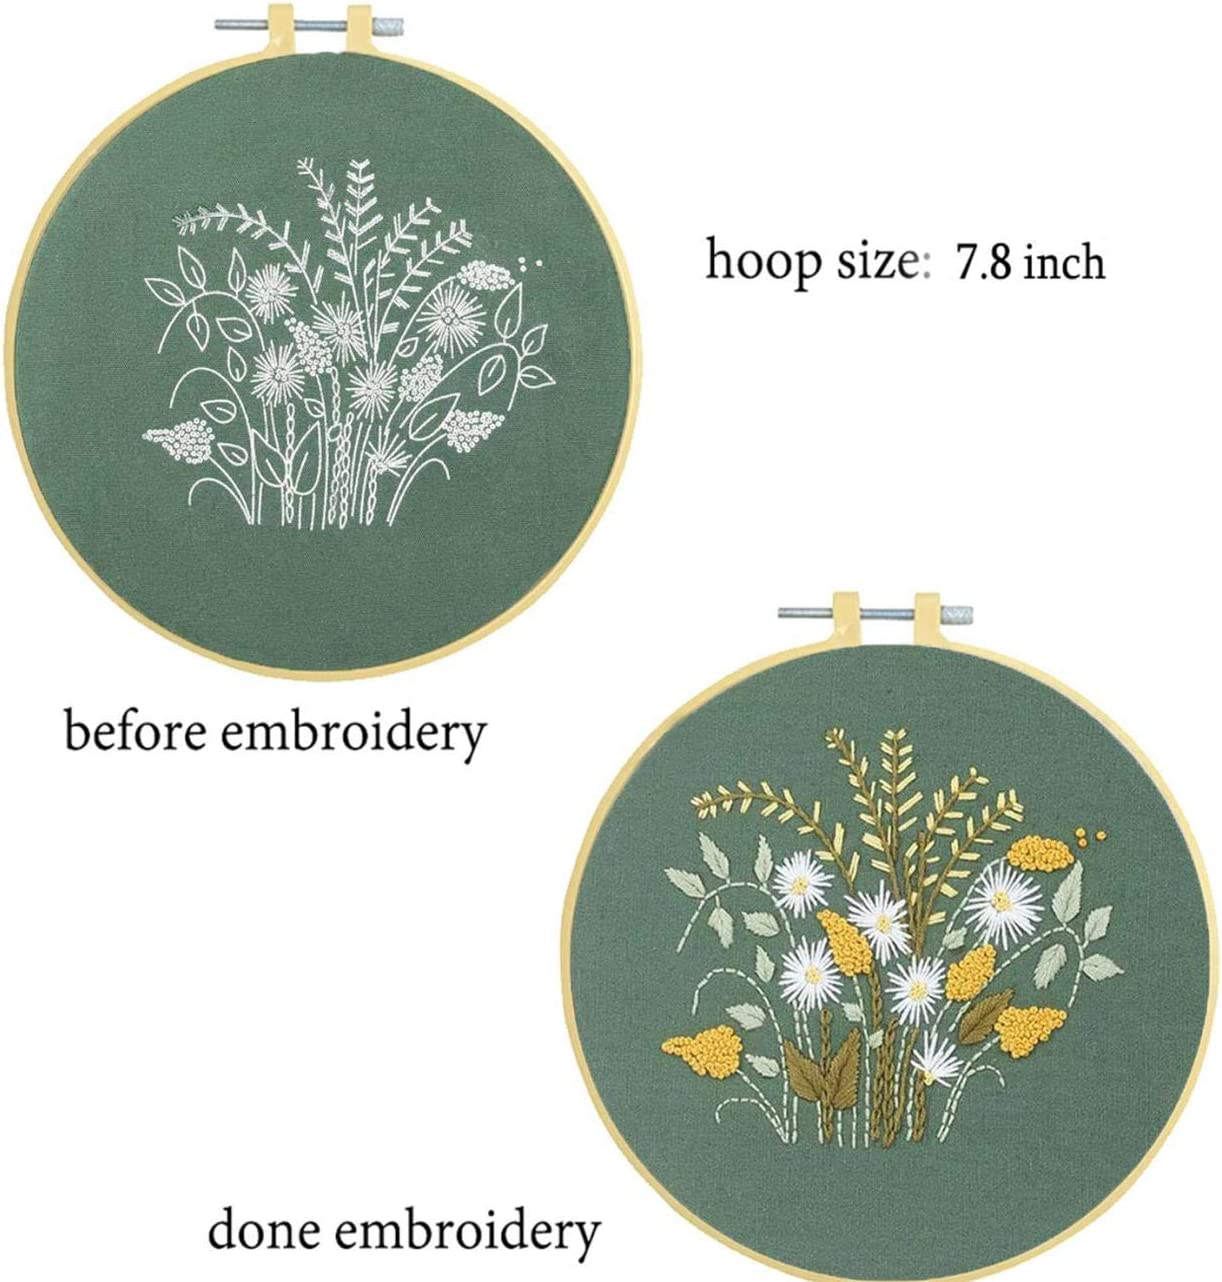 Nuberlic Embroidery Kit for Adults Beginners Cross Stitch Starter Kit with Pattern for Kids Craft Embroidery Hoops Floss Thread Needles